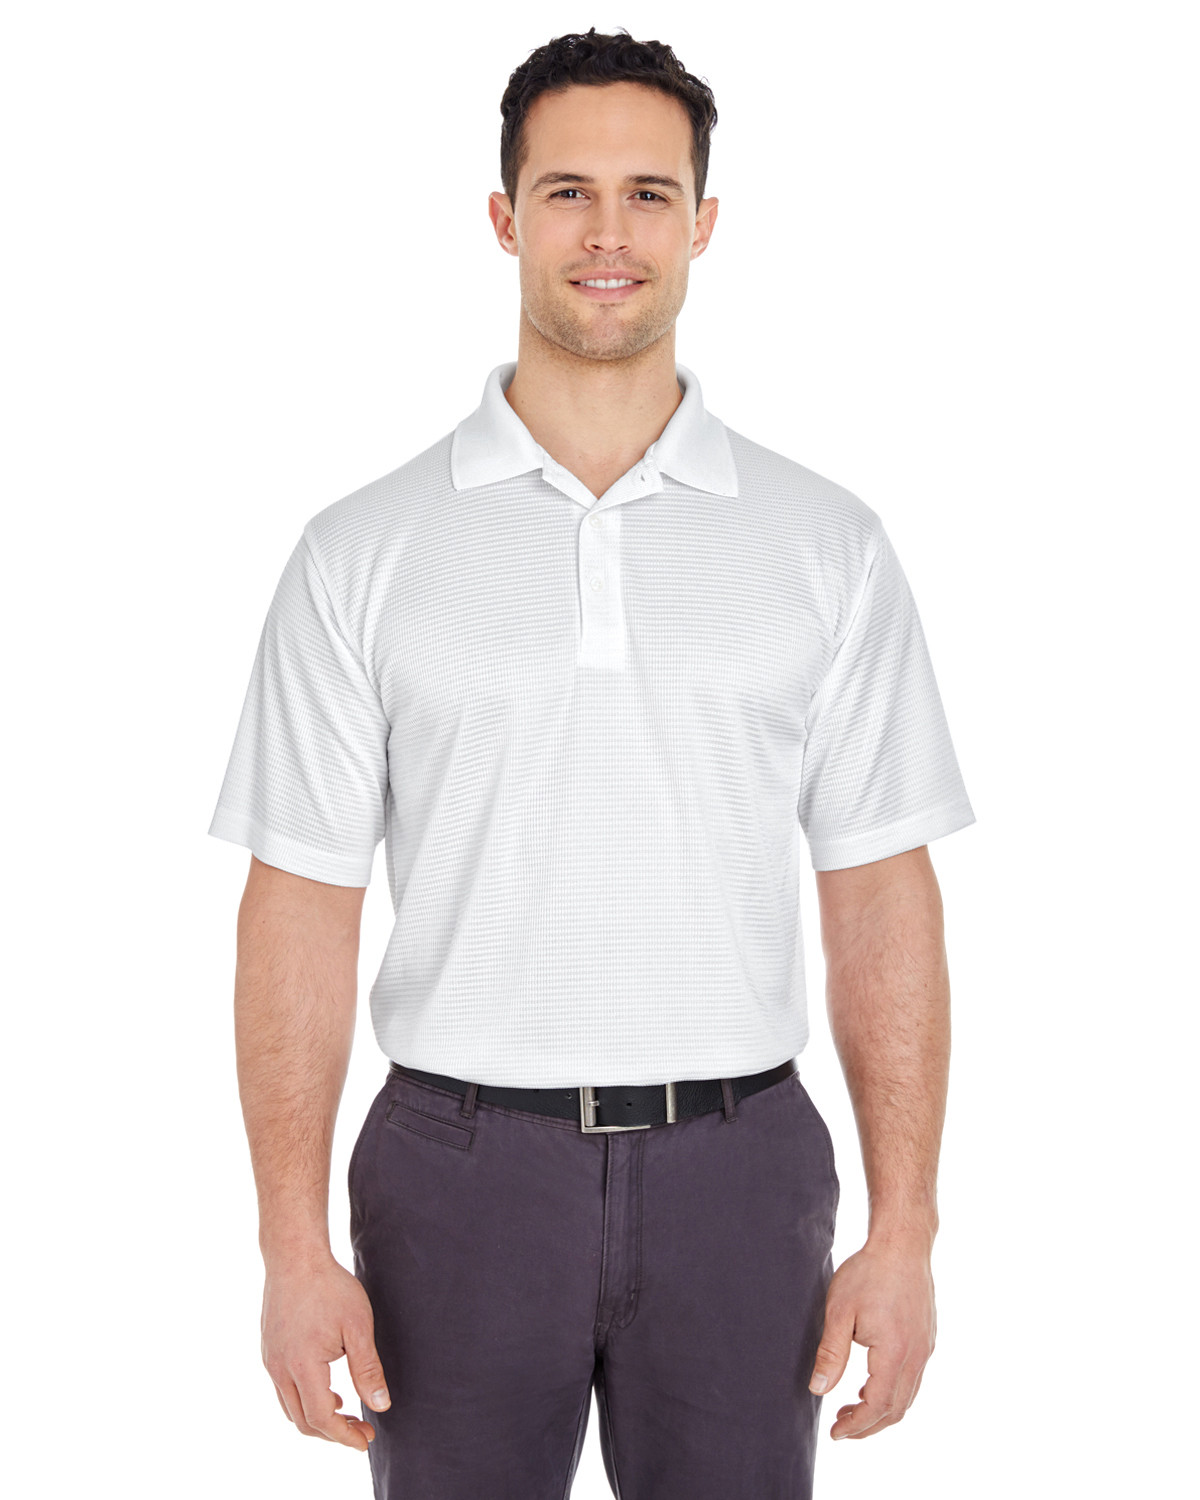 Men's Cool & Dry Elite Mini-Check Jacquard Polo